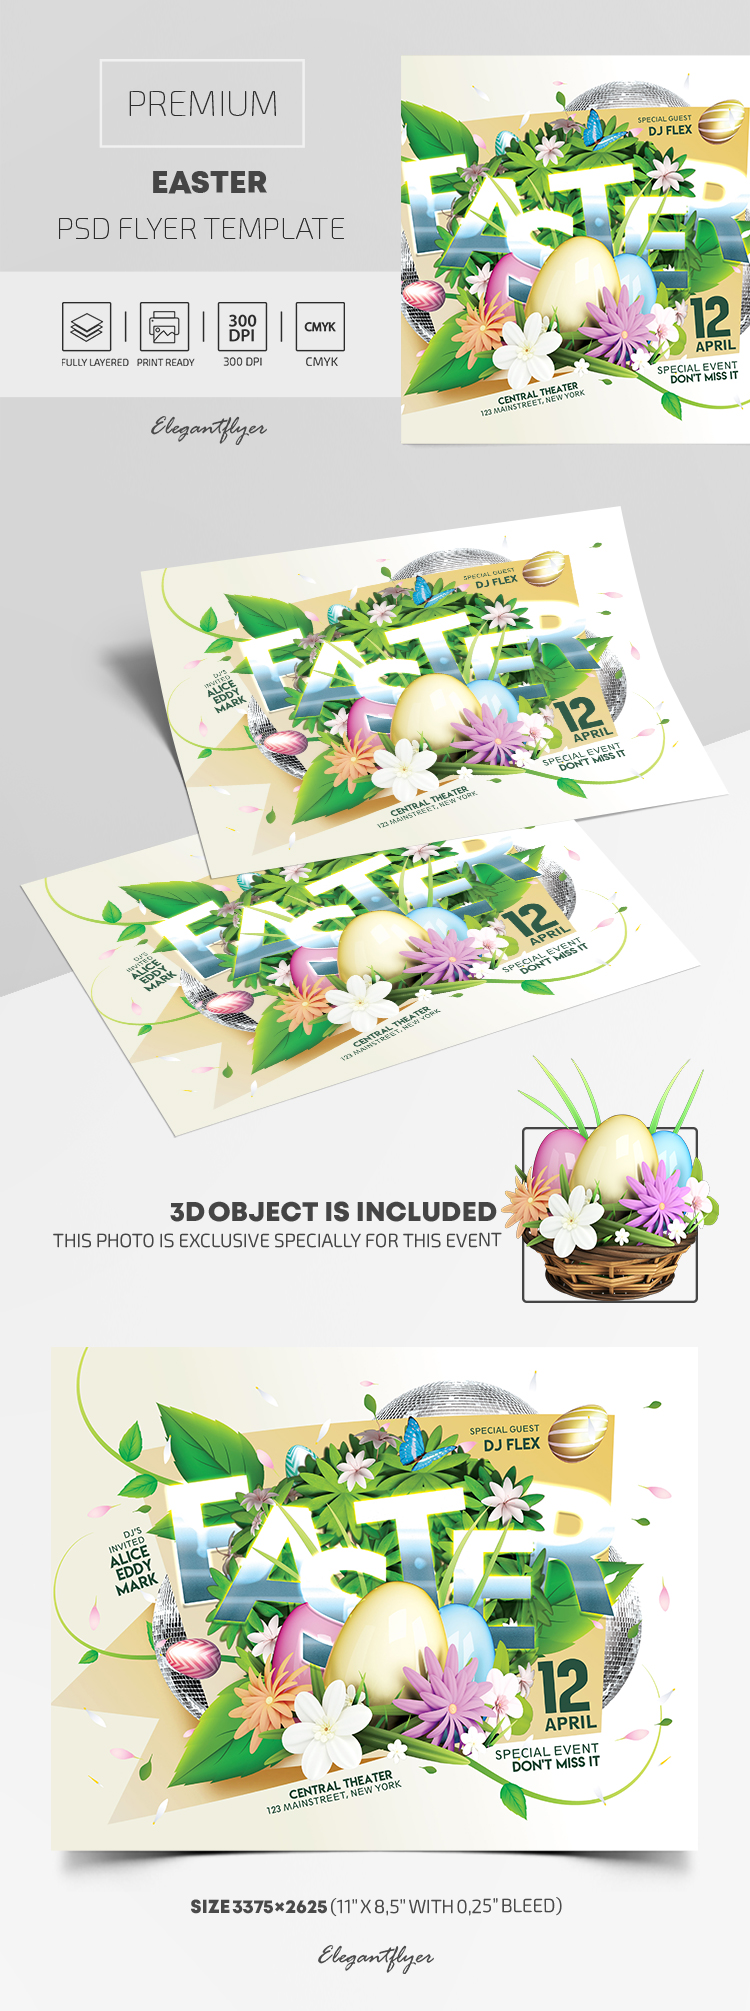 Easter – Premium PSD Flyer Template